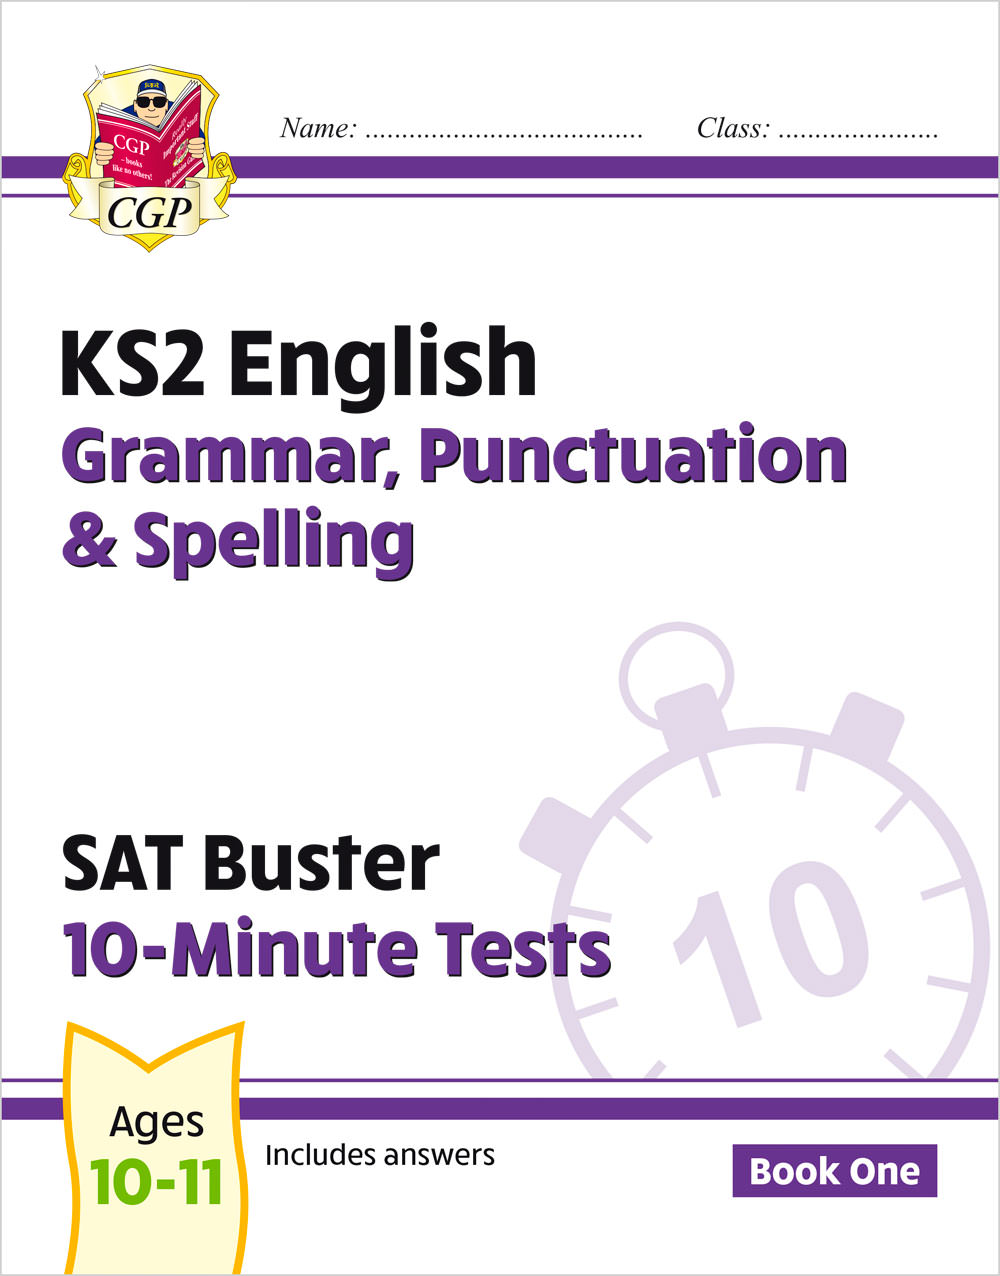 EXPG23 - New KS2 English SAT Buster 10-Minute Tests: Grammar, Punctuation & Spelling - Book 1